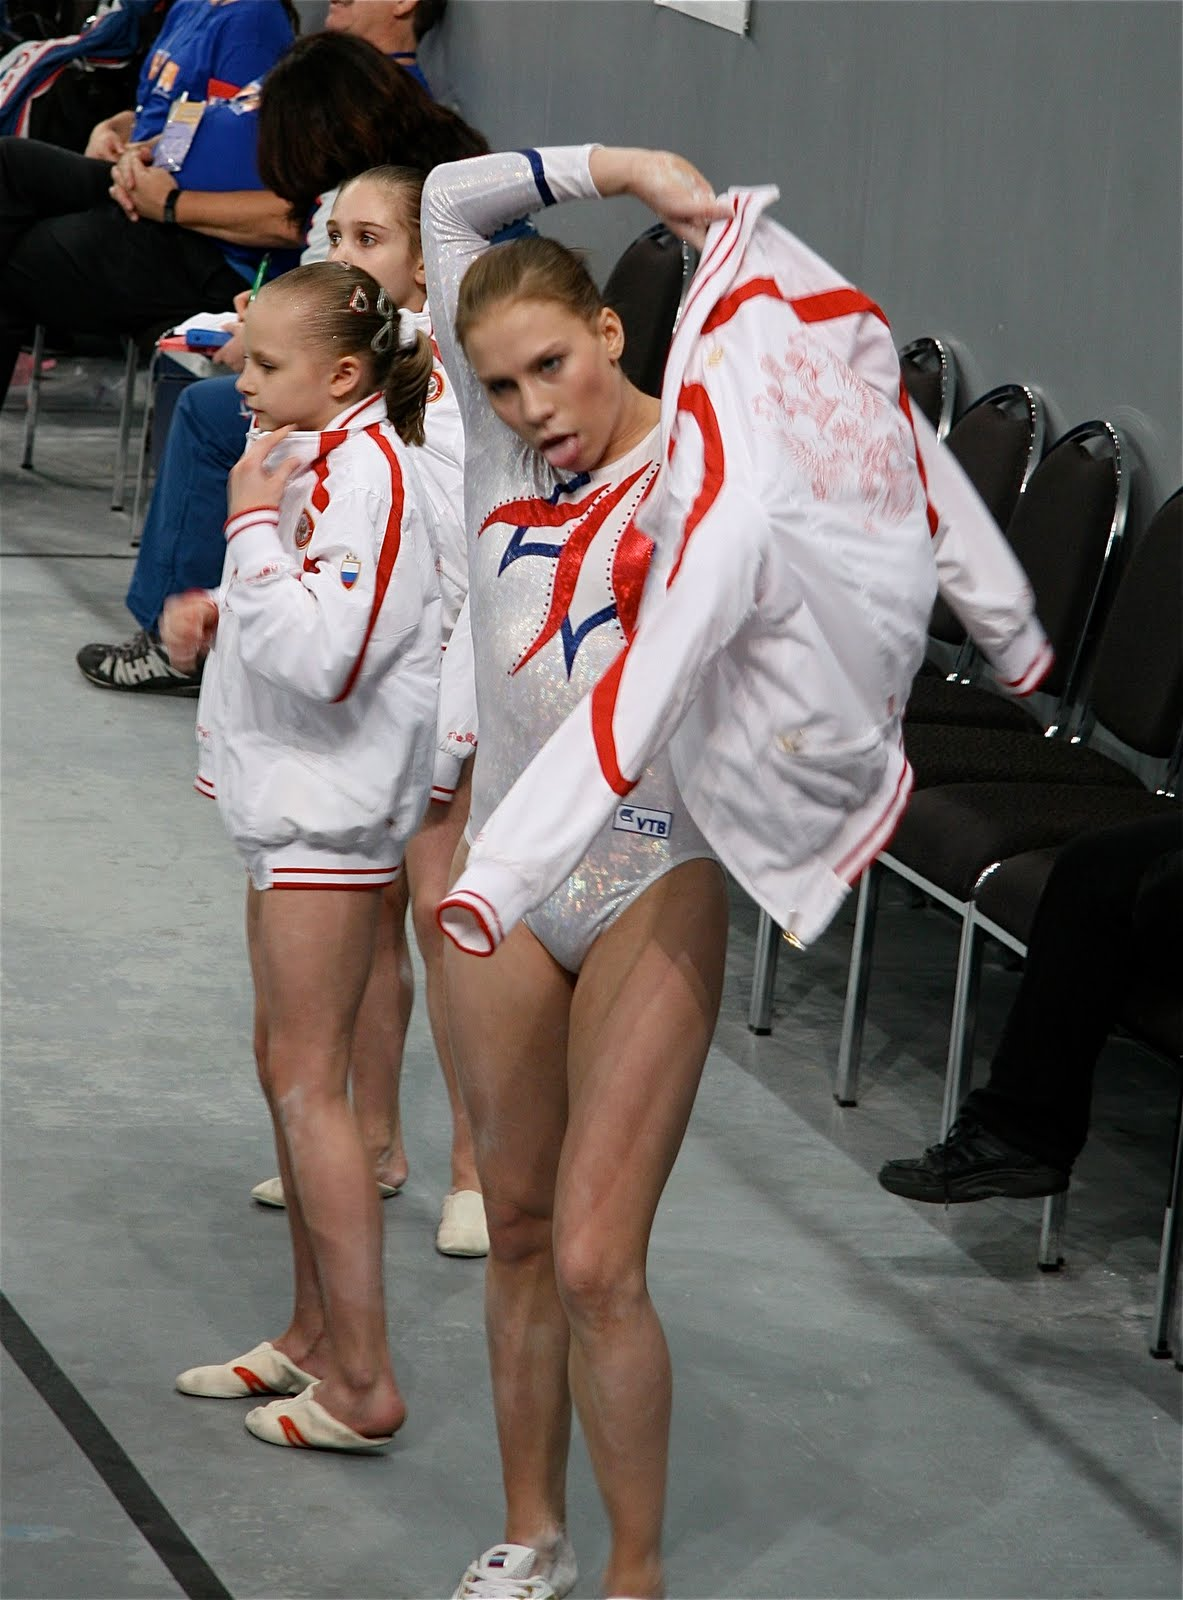 Olympic Female Gymnast Wardrobe Malfunctions http://stvvk.in/gymnastics-waredrobe-malfunction.html